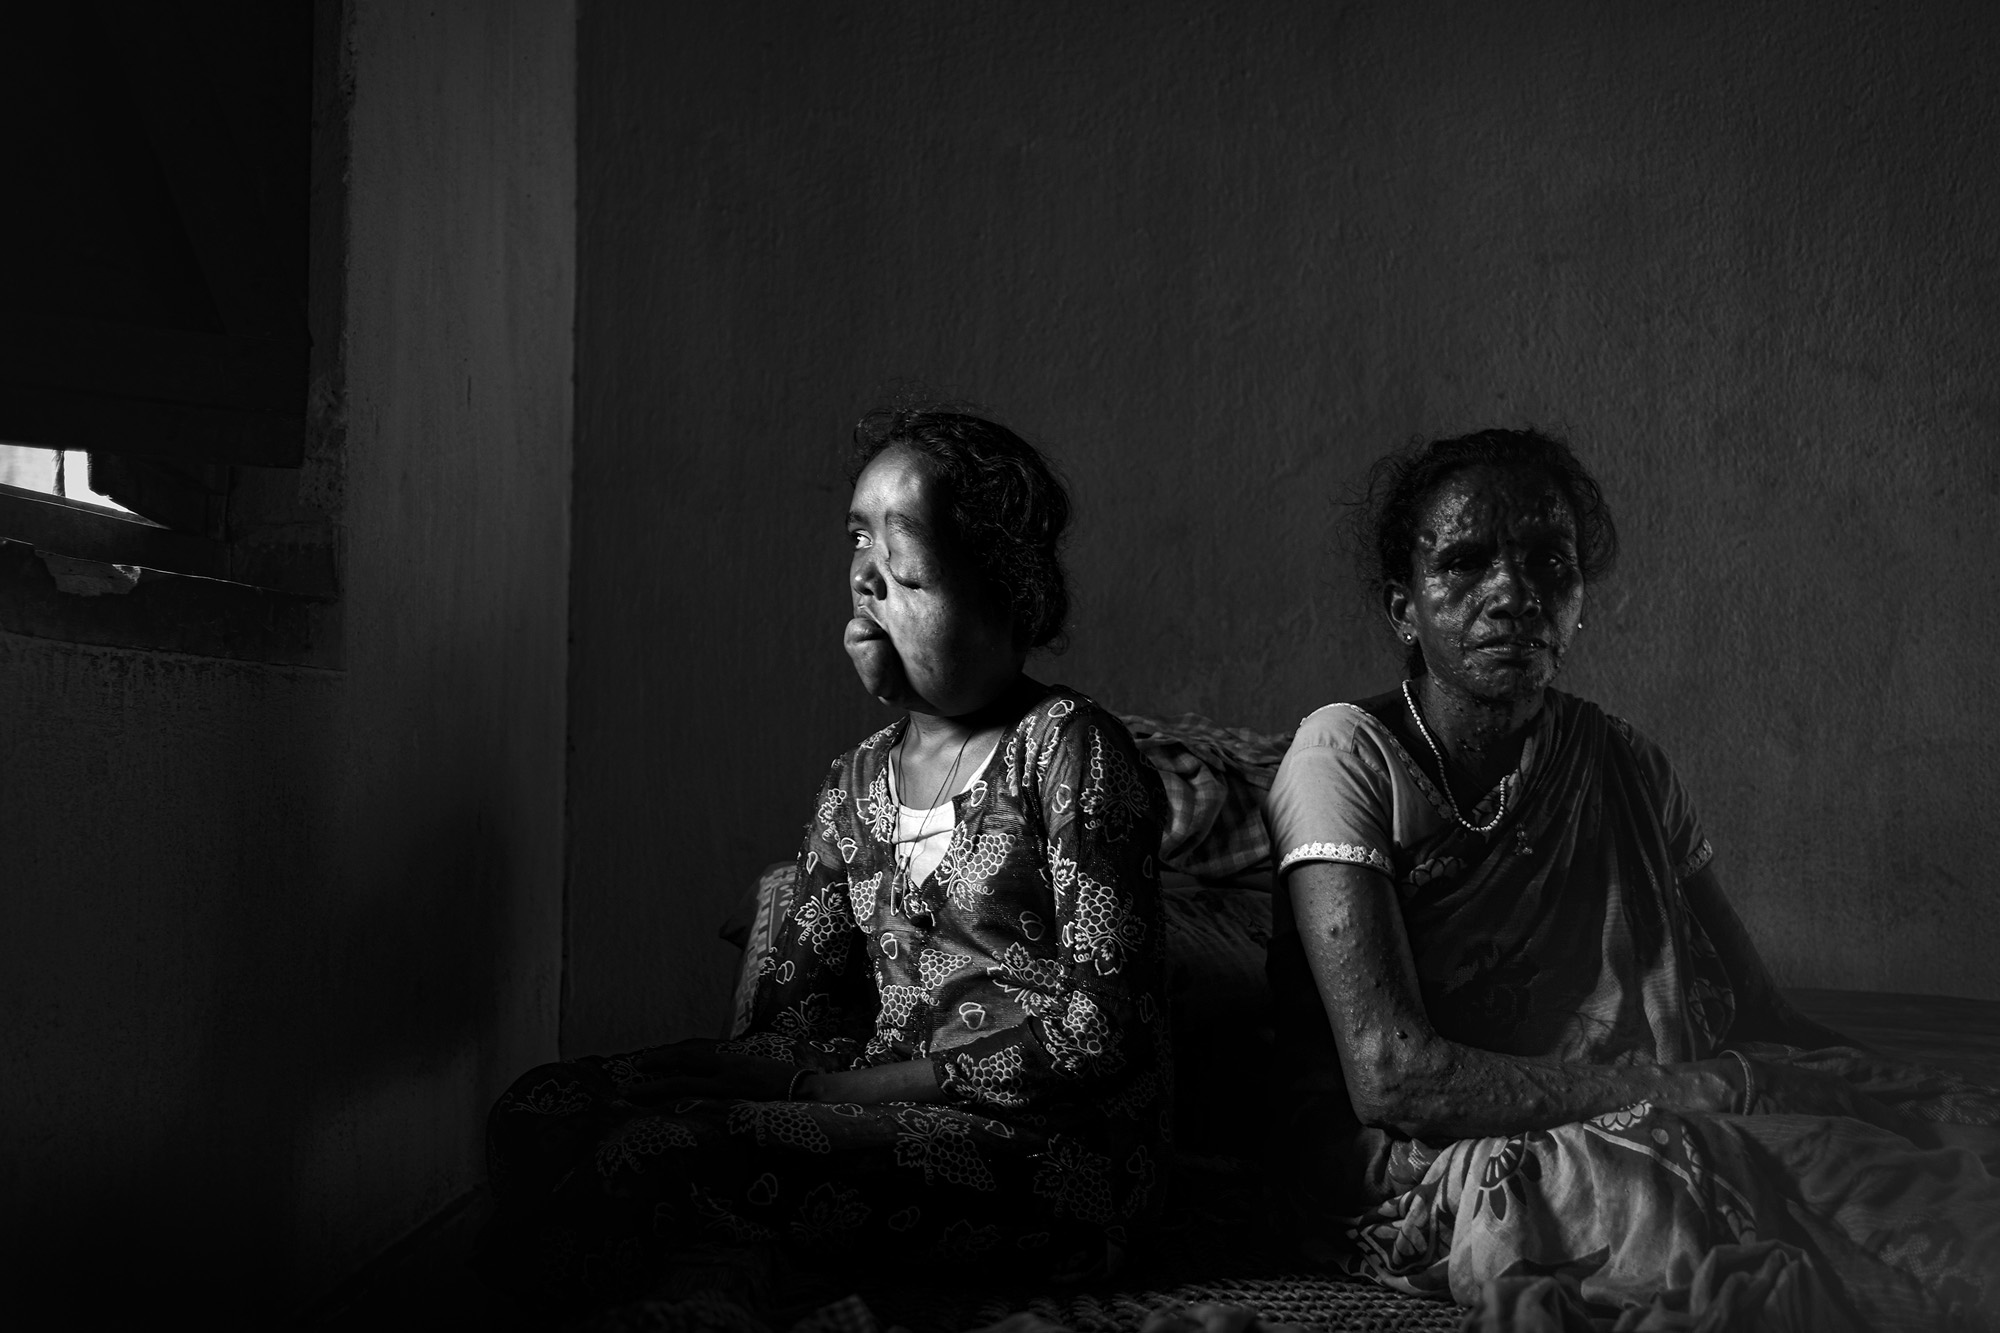 Anamika Oraom (15) with her mother Nagi Oraom (45) in Dungridi village, roughly one kilometer away from Narwa Pahar uranium mine. Anamika suffers from a malignant tumor on her face but the family cannot afford surgery. Her mother also suffers from various physical ailments. Photo by Subhrajit Sen.